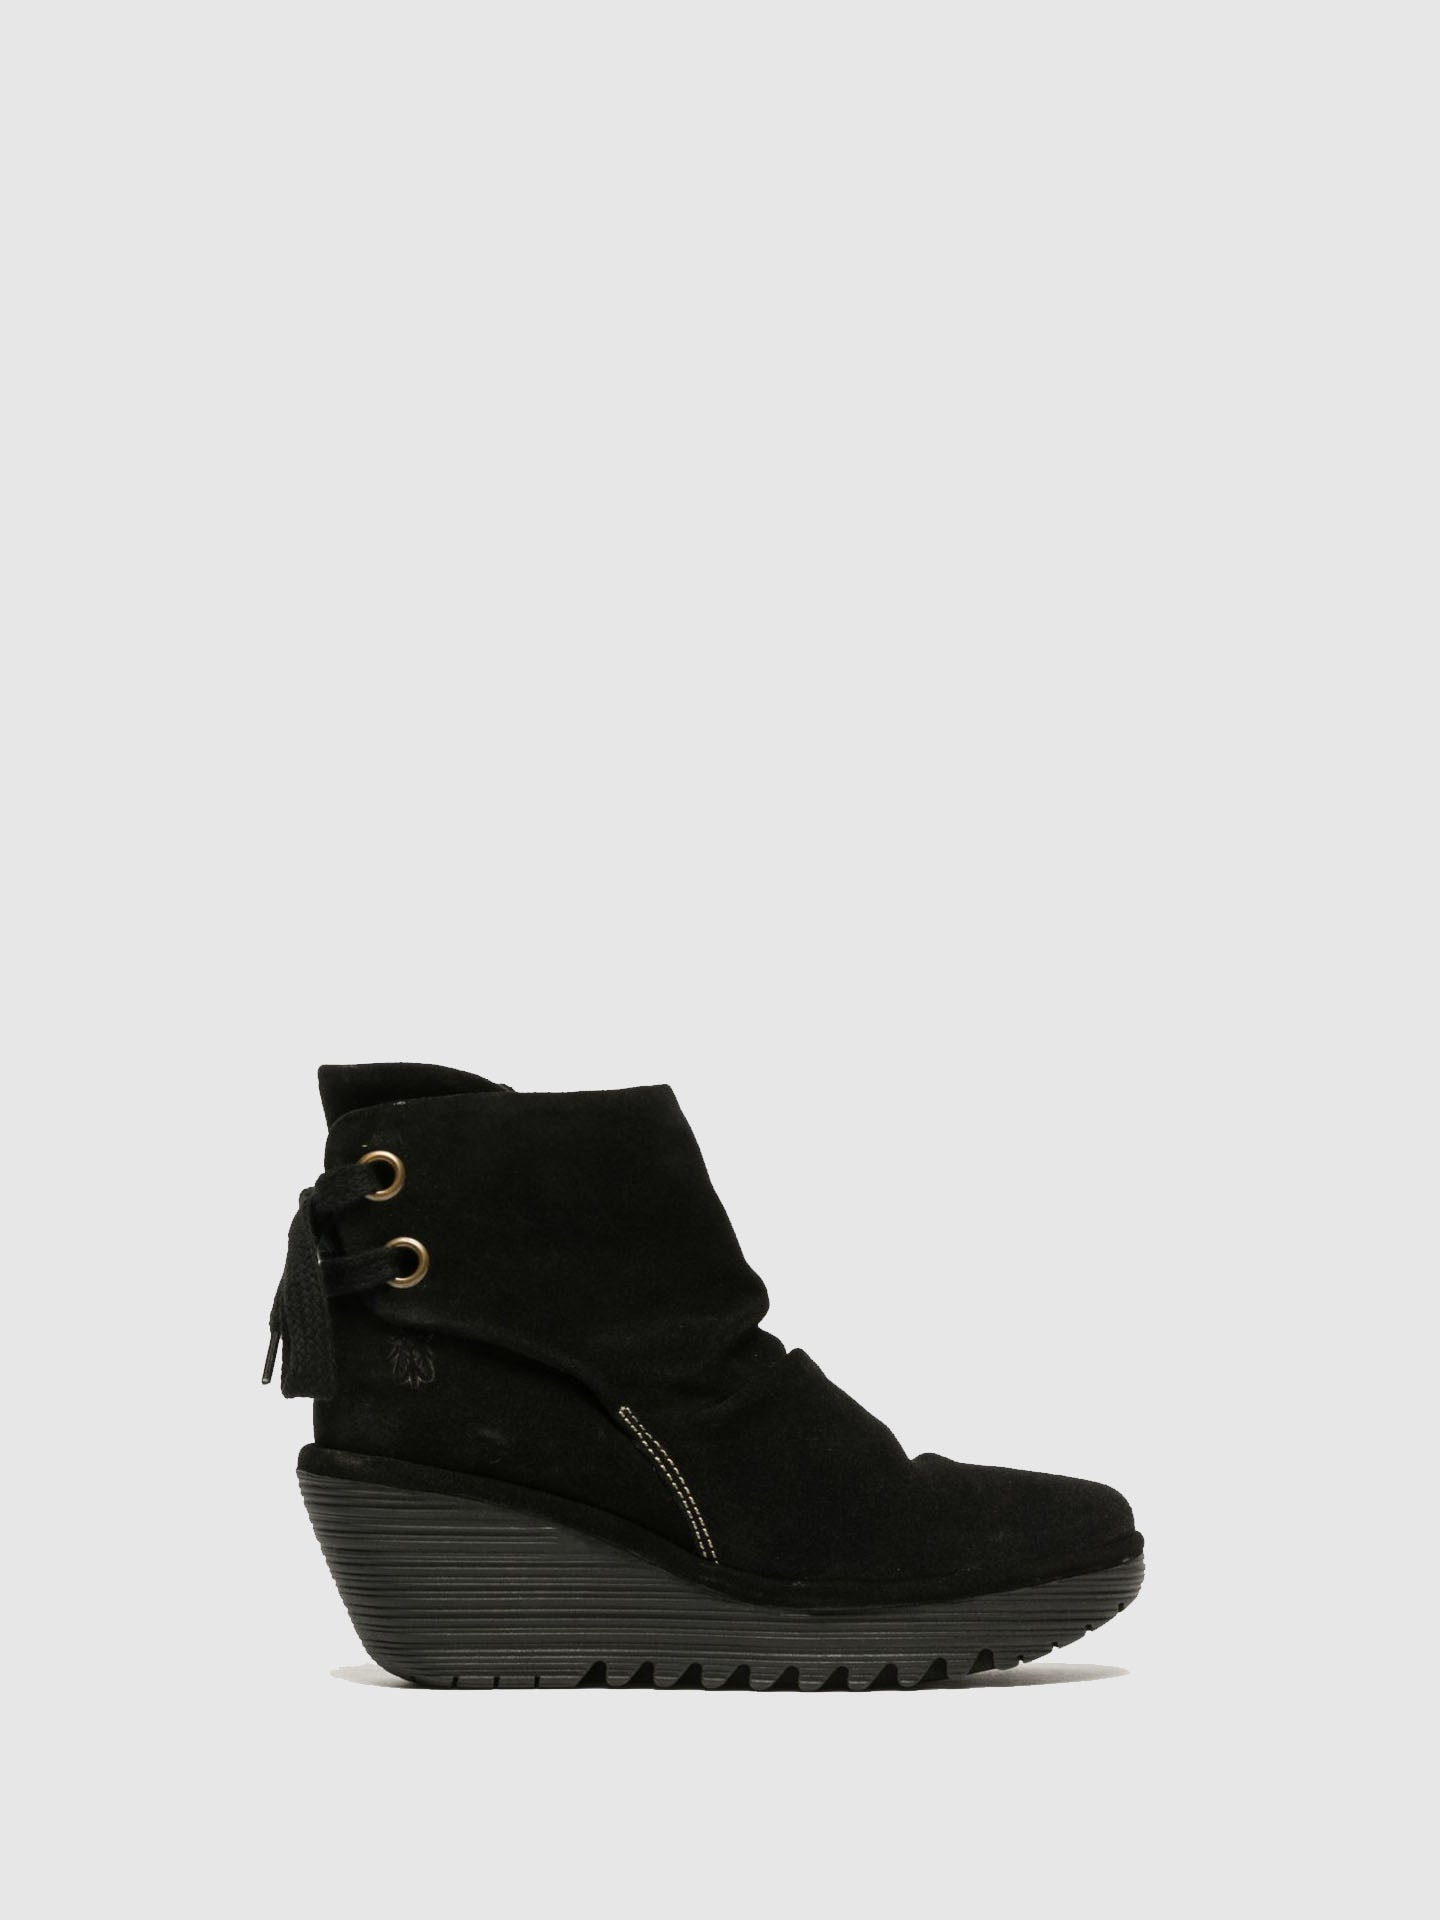 Fly London Matte Black Wedge Ankle Boots